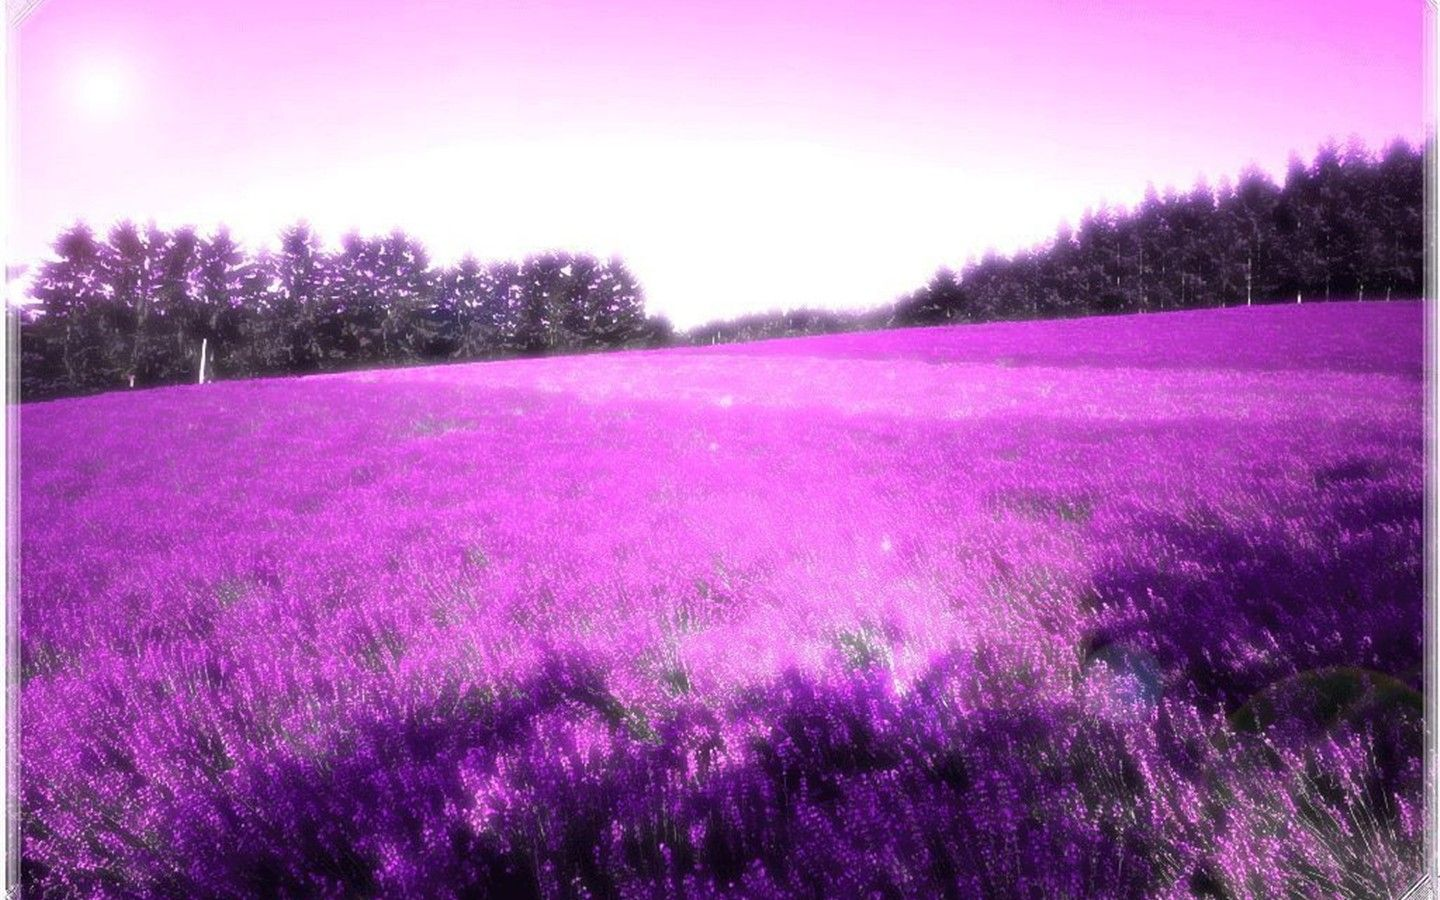 An-Endless-Field-of-Purple-Flowers | Life of flowers ...